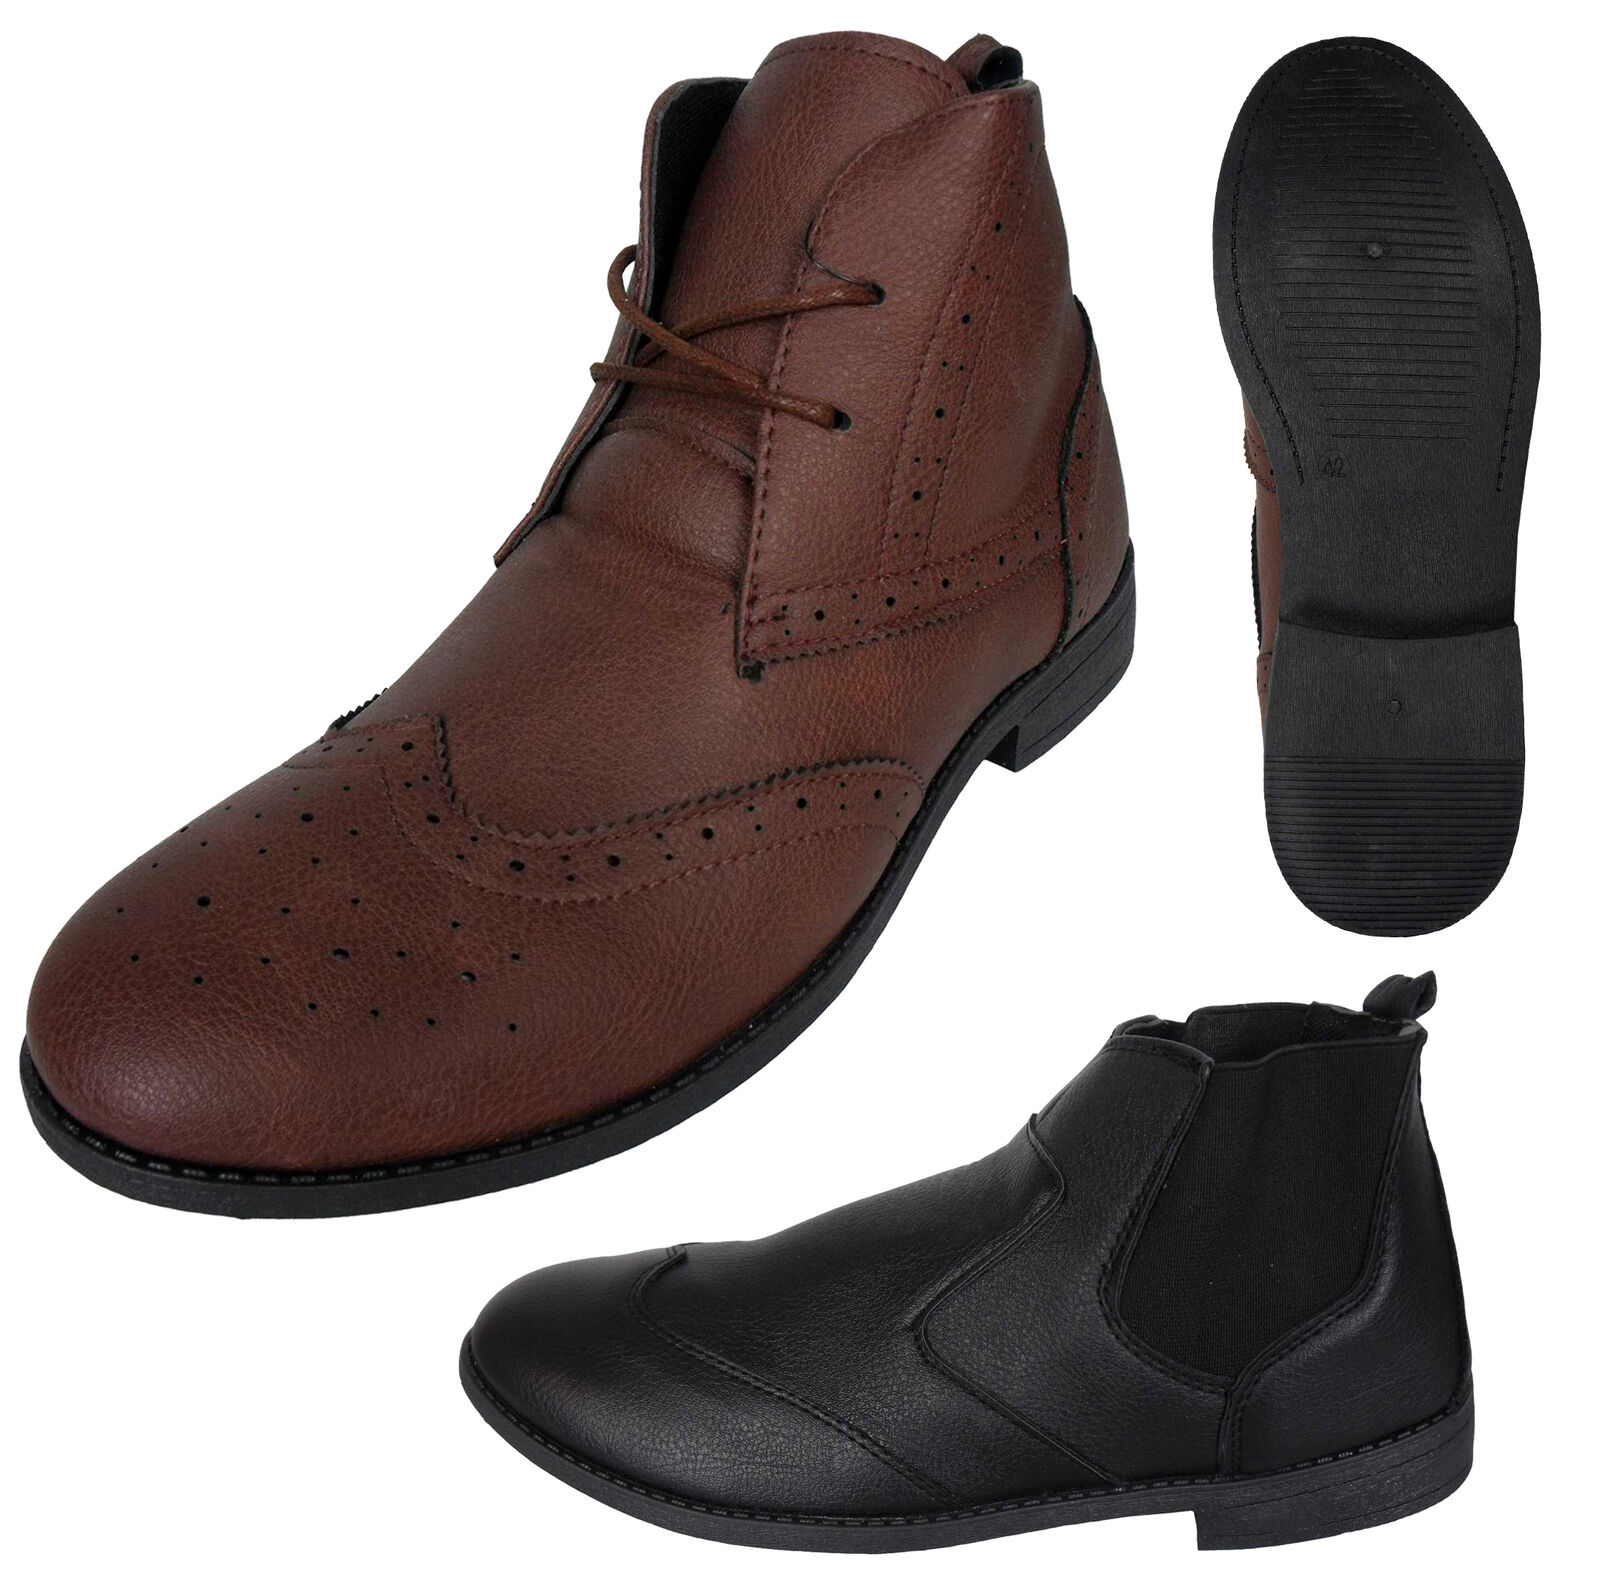 Mens Brogue Chelsea Ankle Boots Faux Leather Brogues Pull On Boot Shoes New